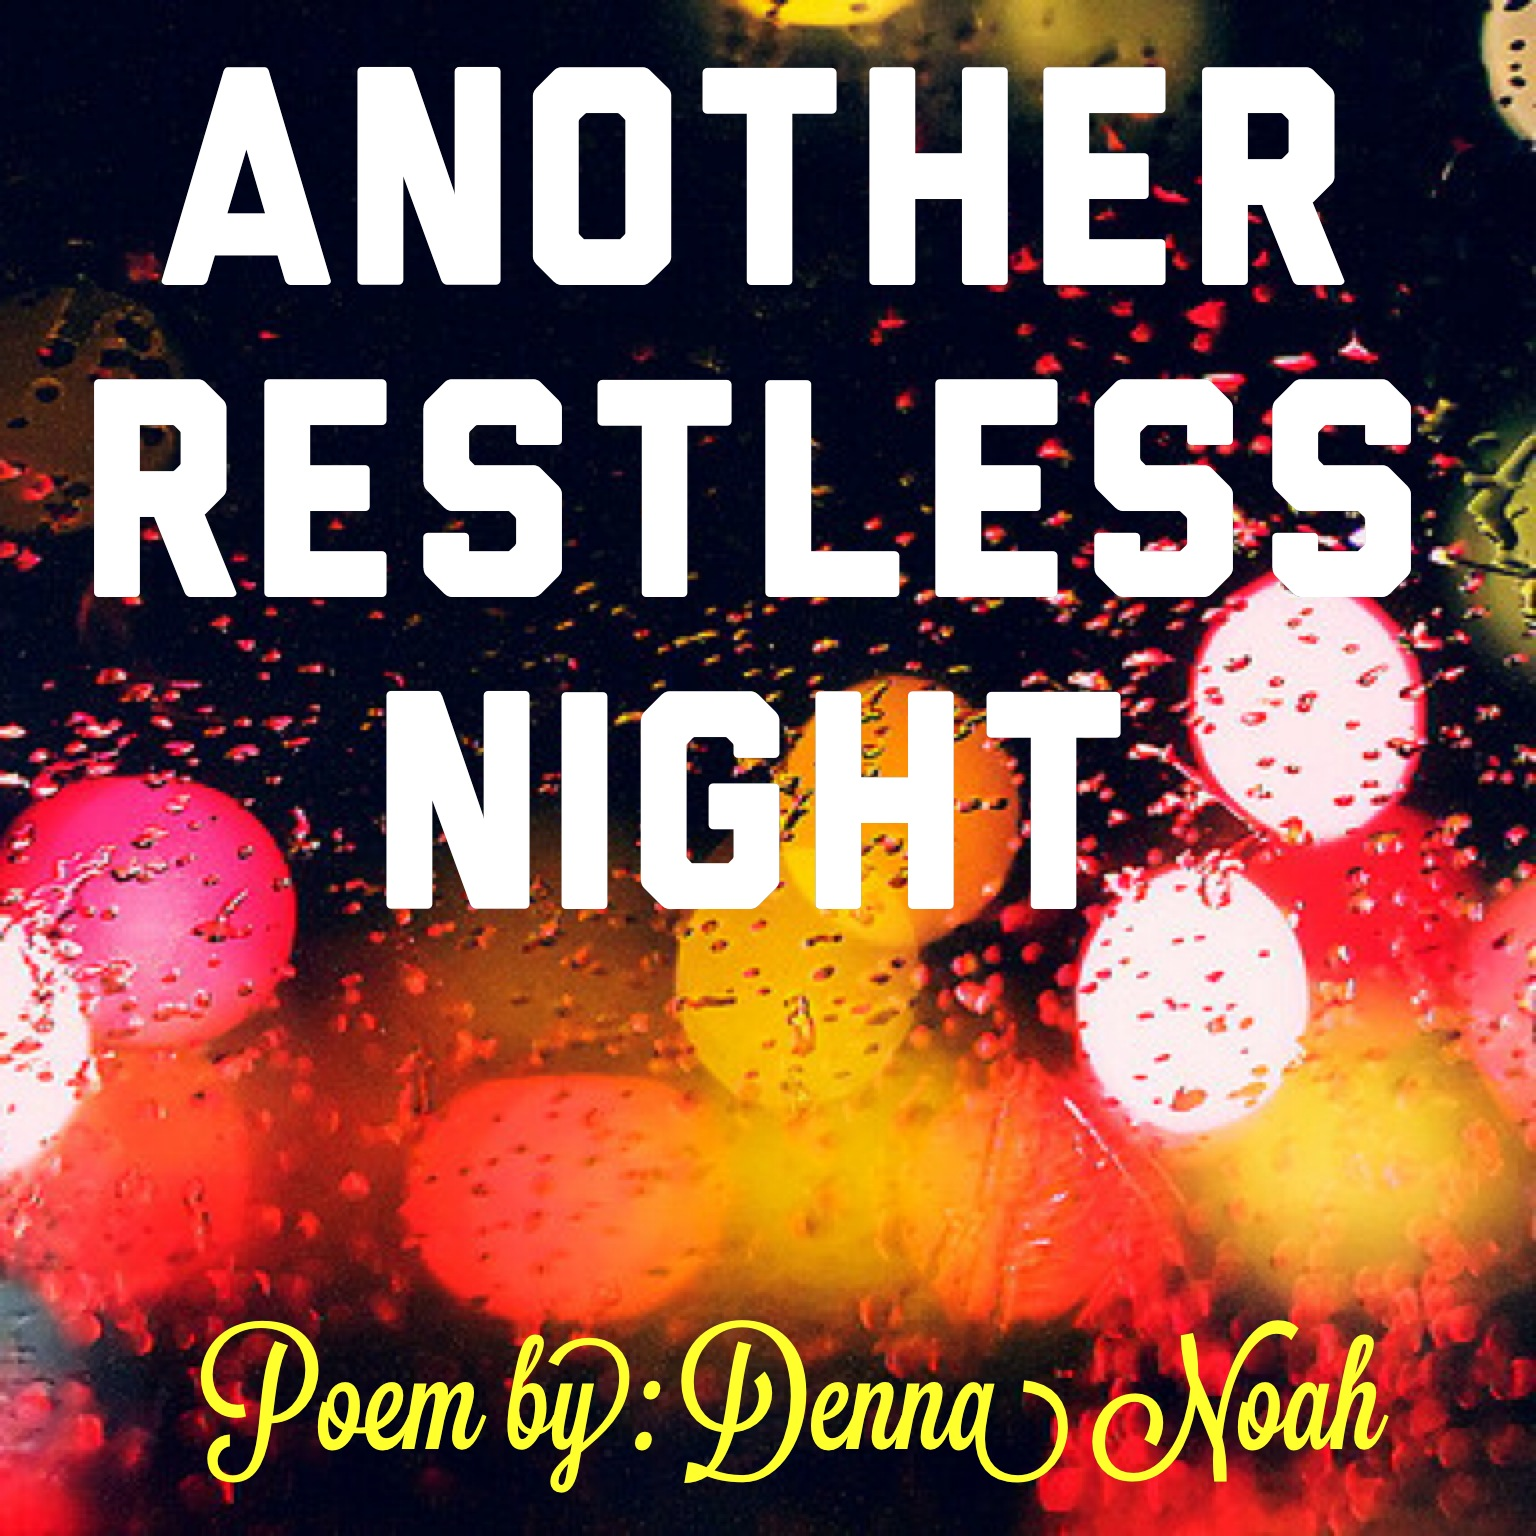 Another restless night poem by denna noah another restless night poem narcolepsy blog darkness falls sleep eventually too ccuart Gallery